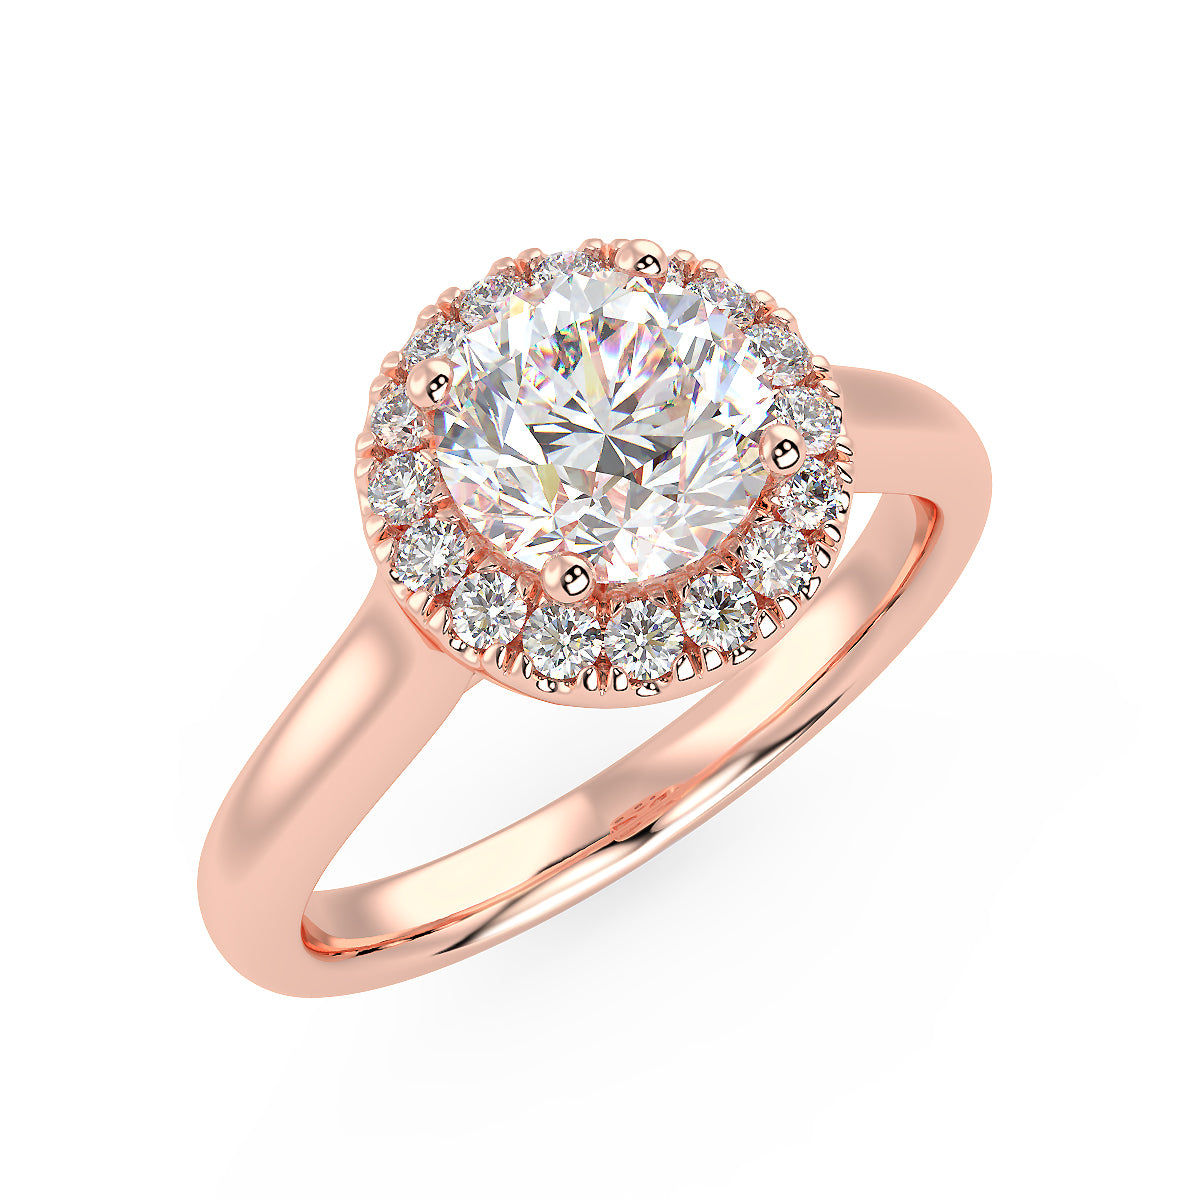 Rigel Engagement Ring in Rose Gold